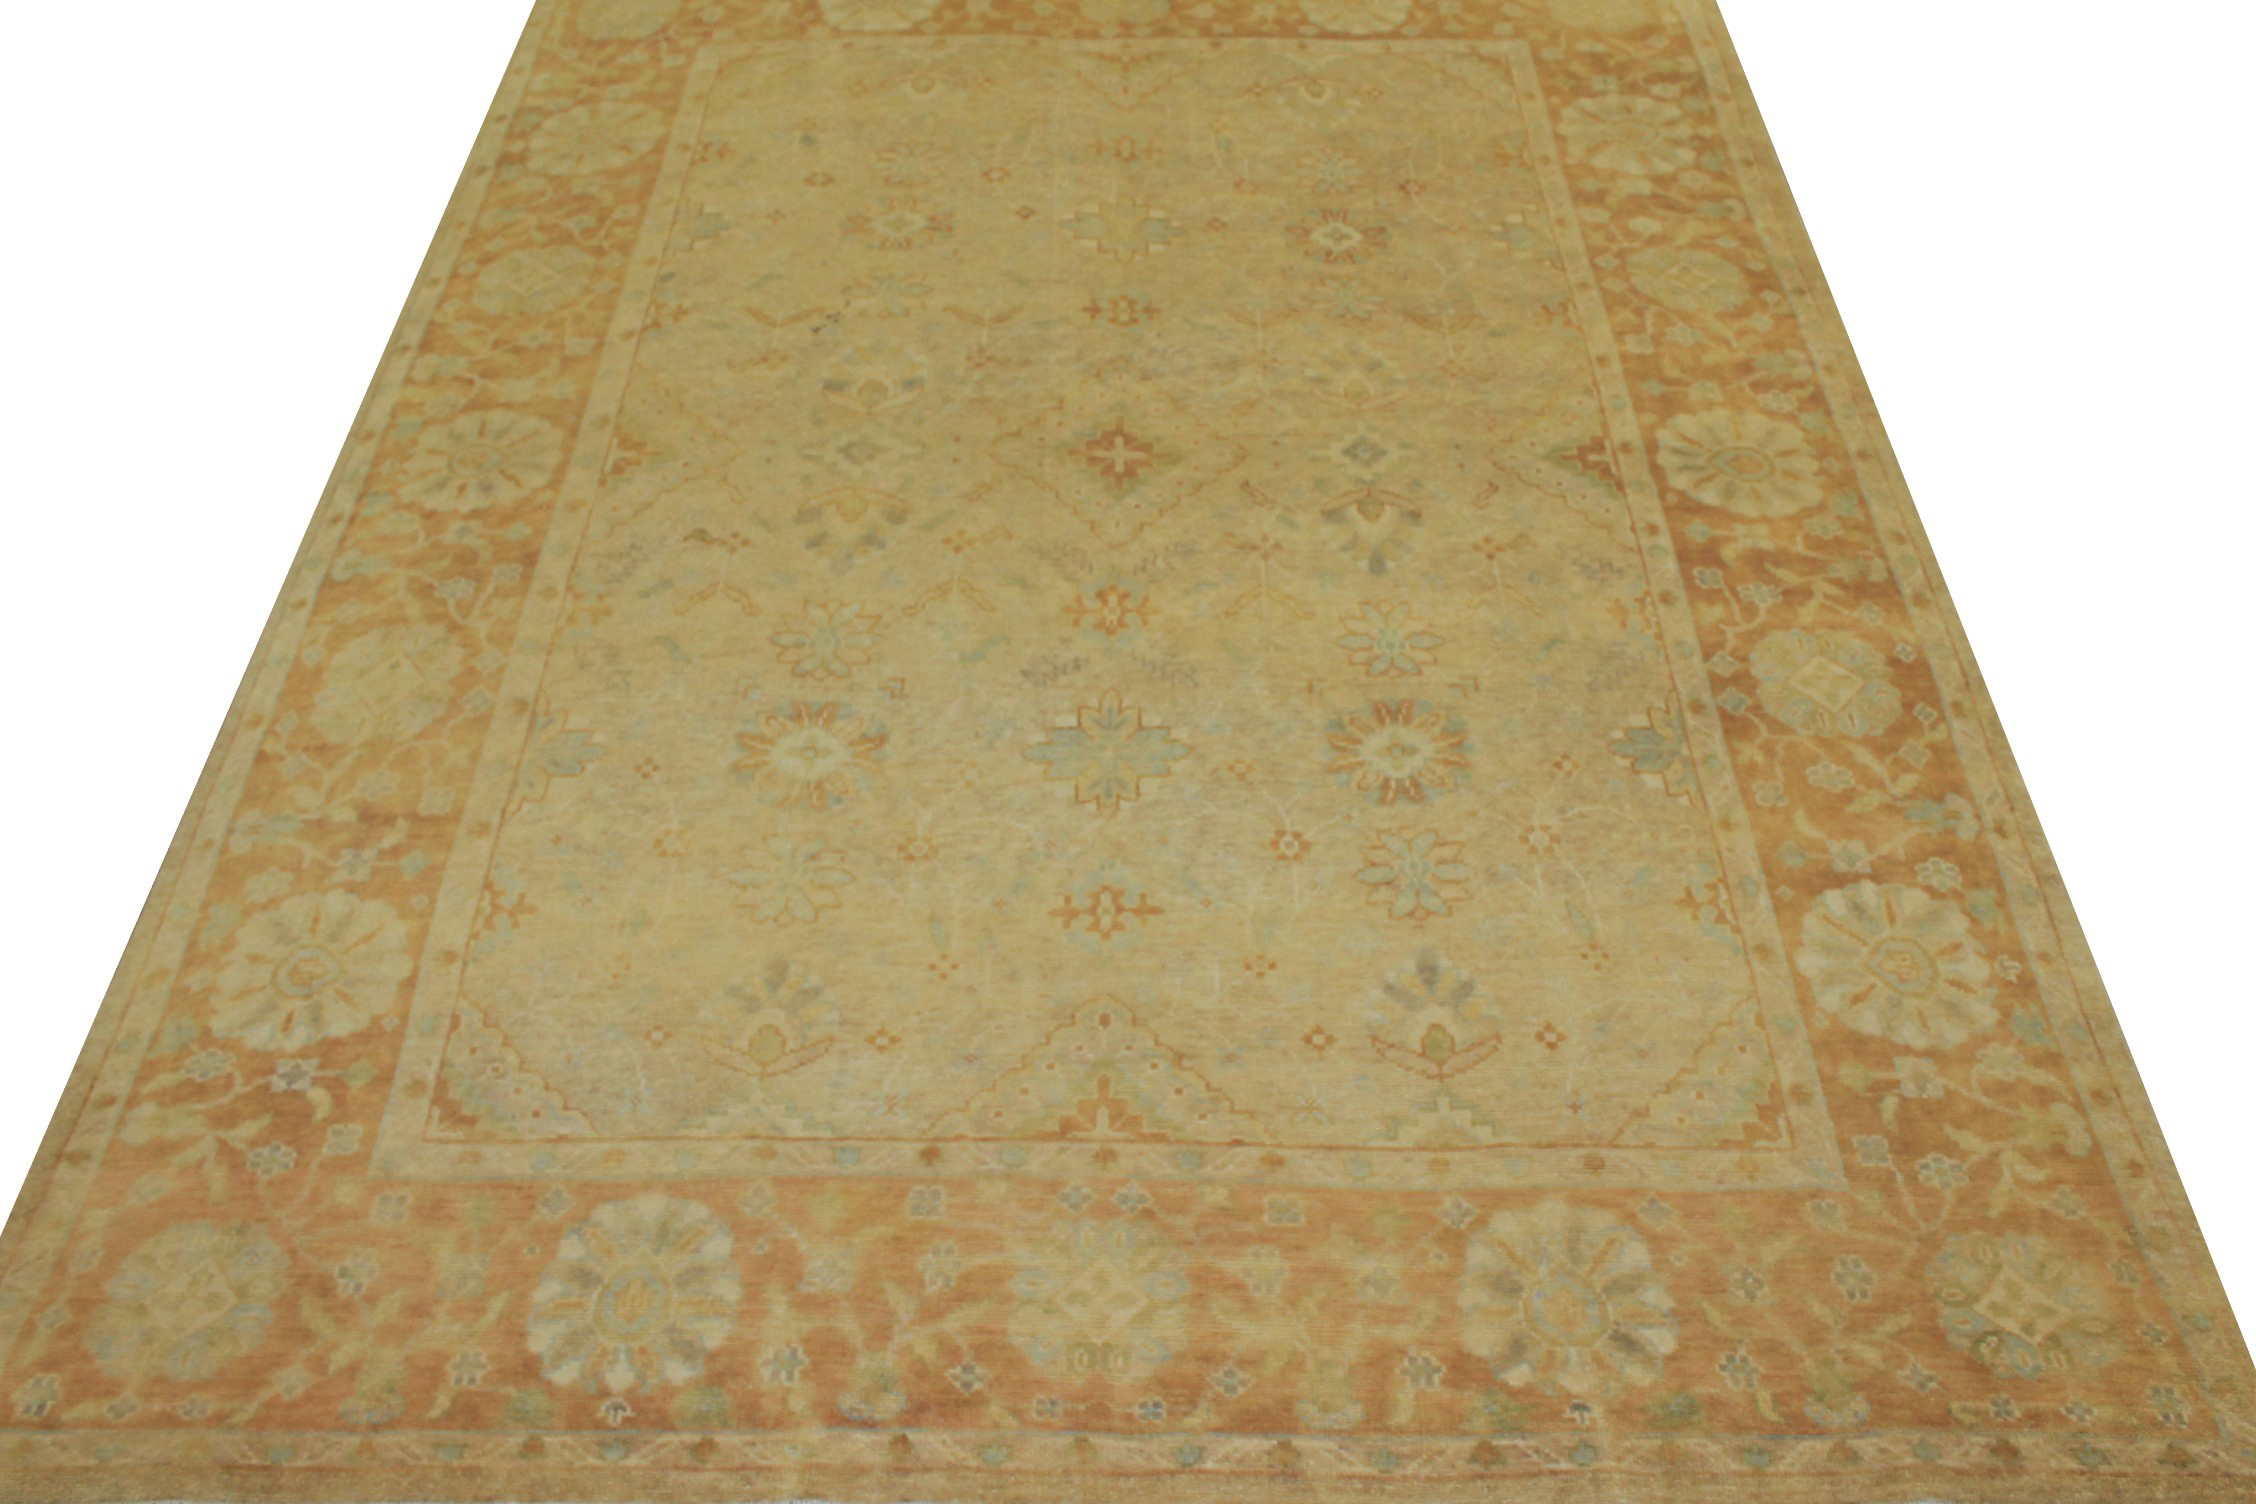 8x10 Oushak Hand Knotted Wool Area Rug - MR14859